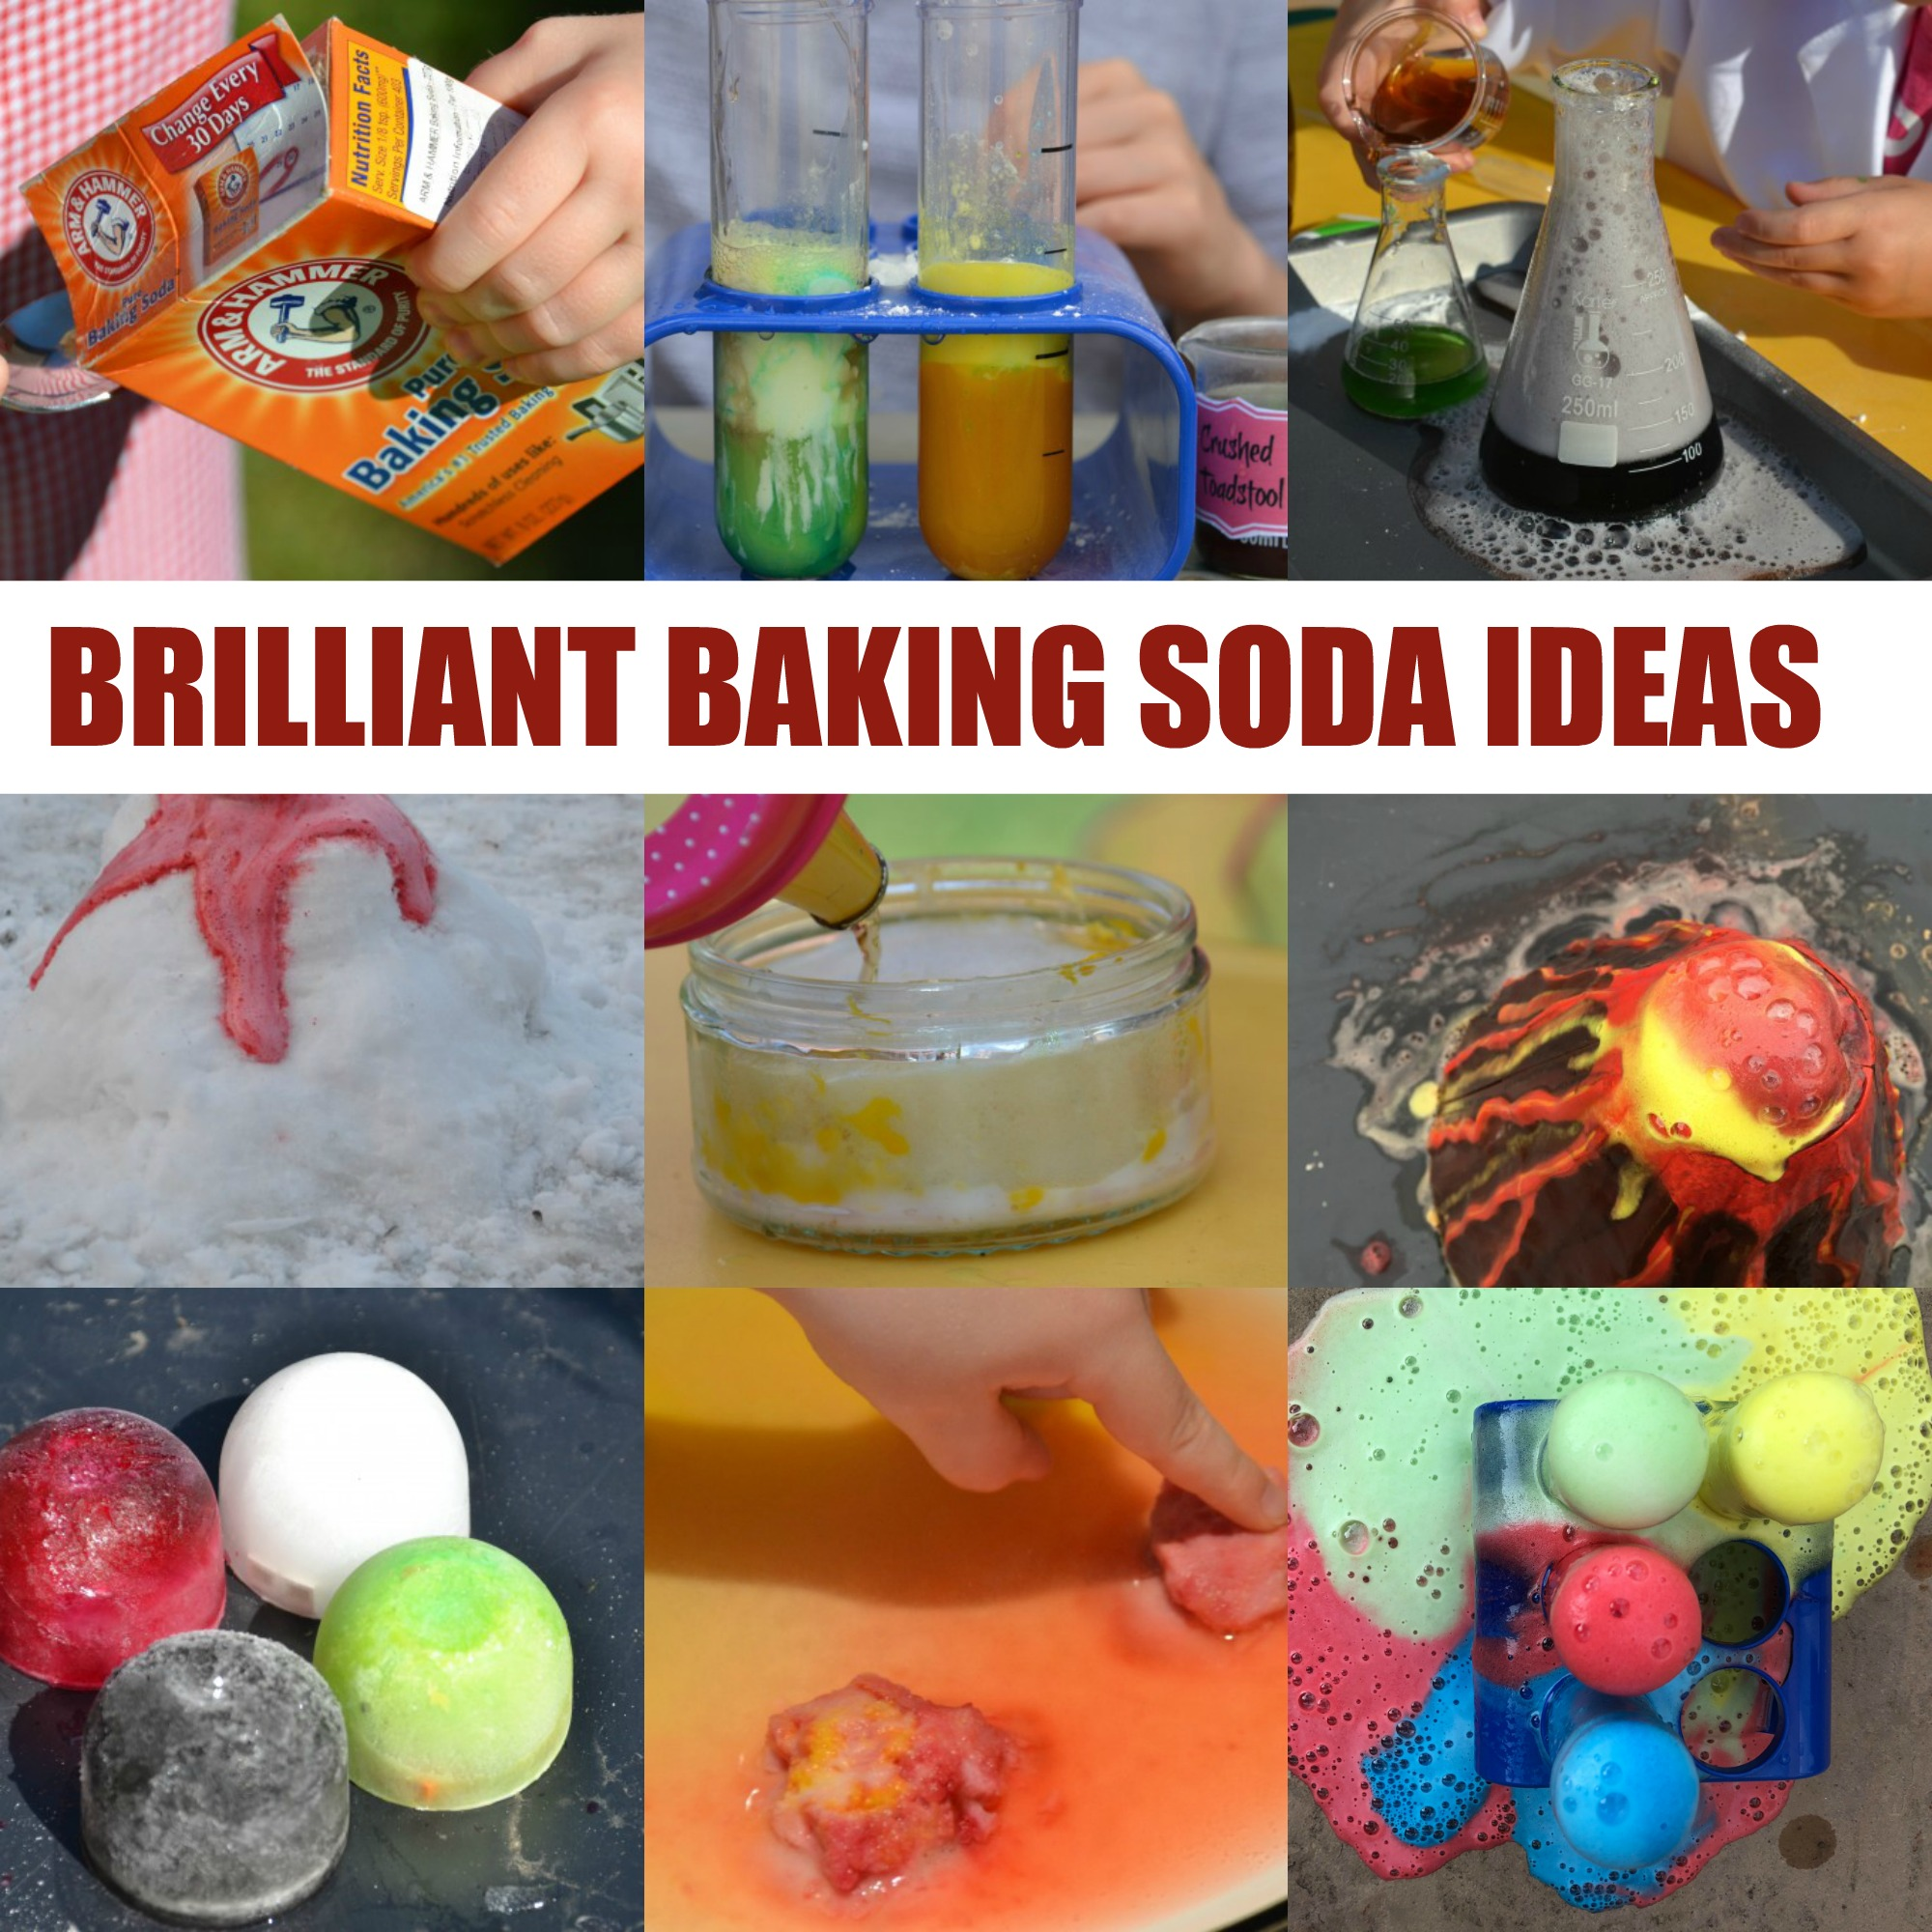 Baking Soda Met Citroen Amazing Baking Soda Experiments Science Sparks